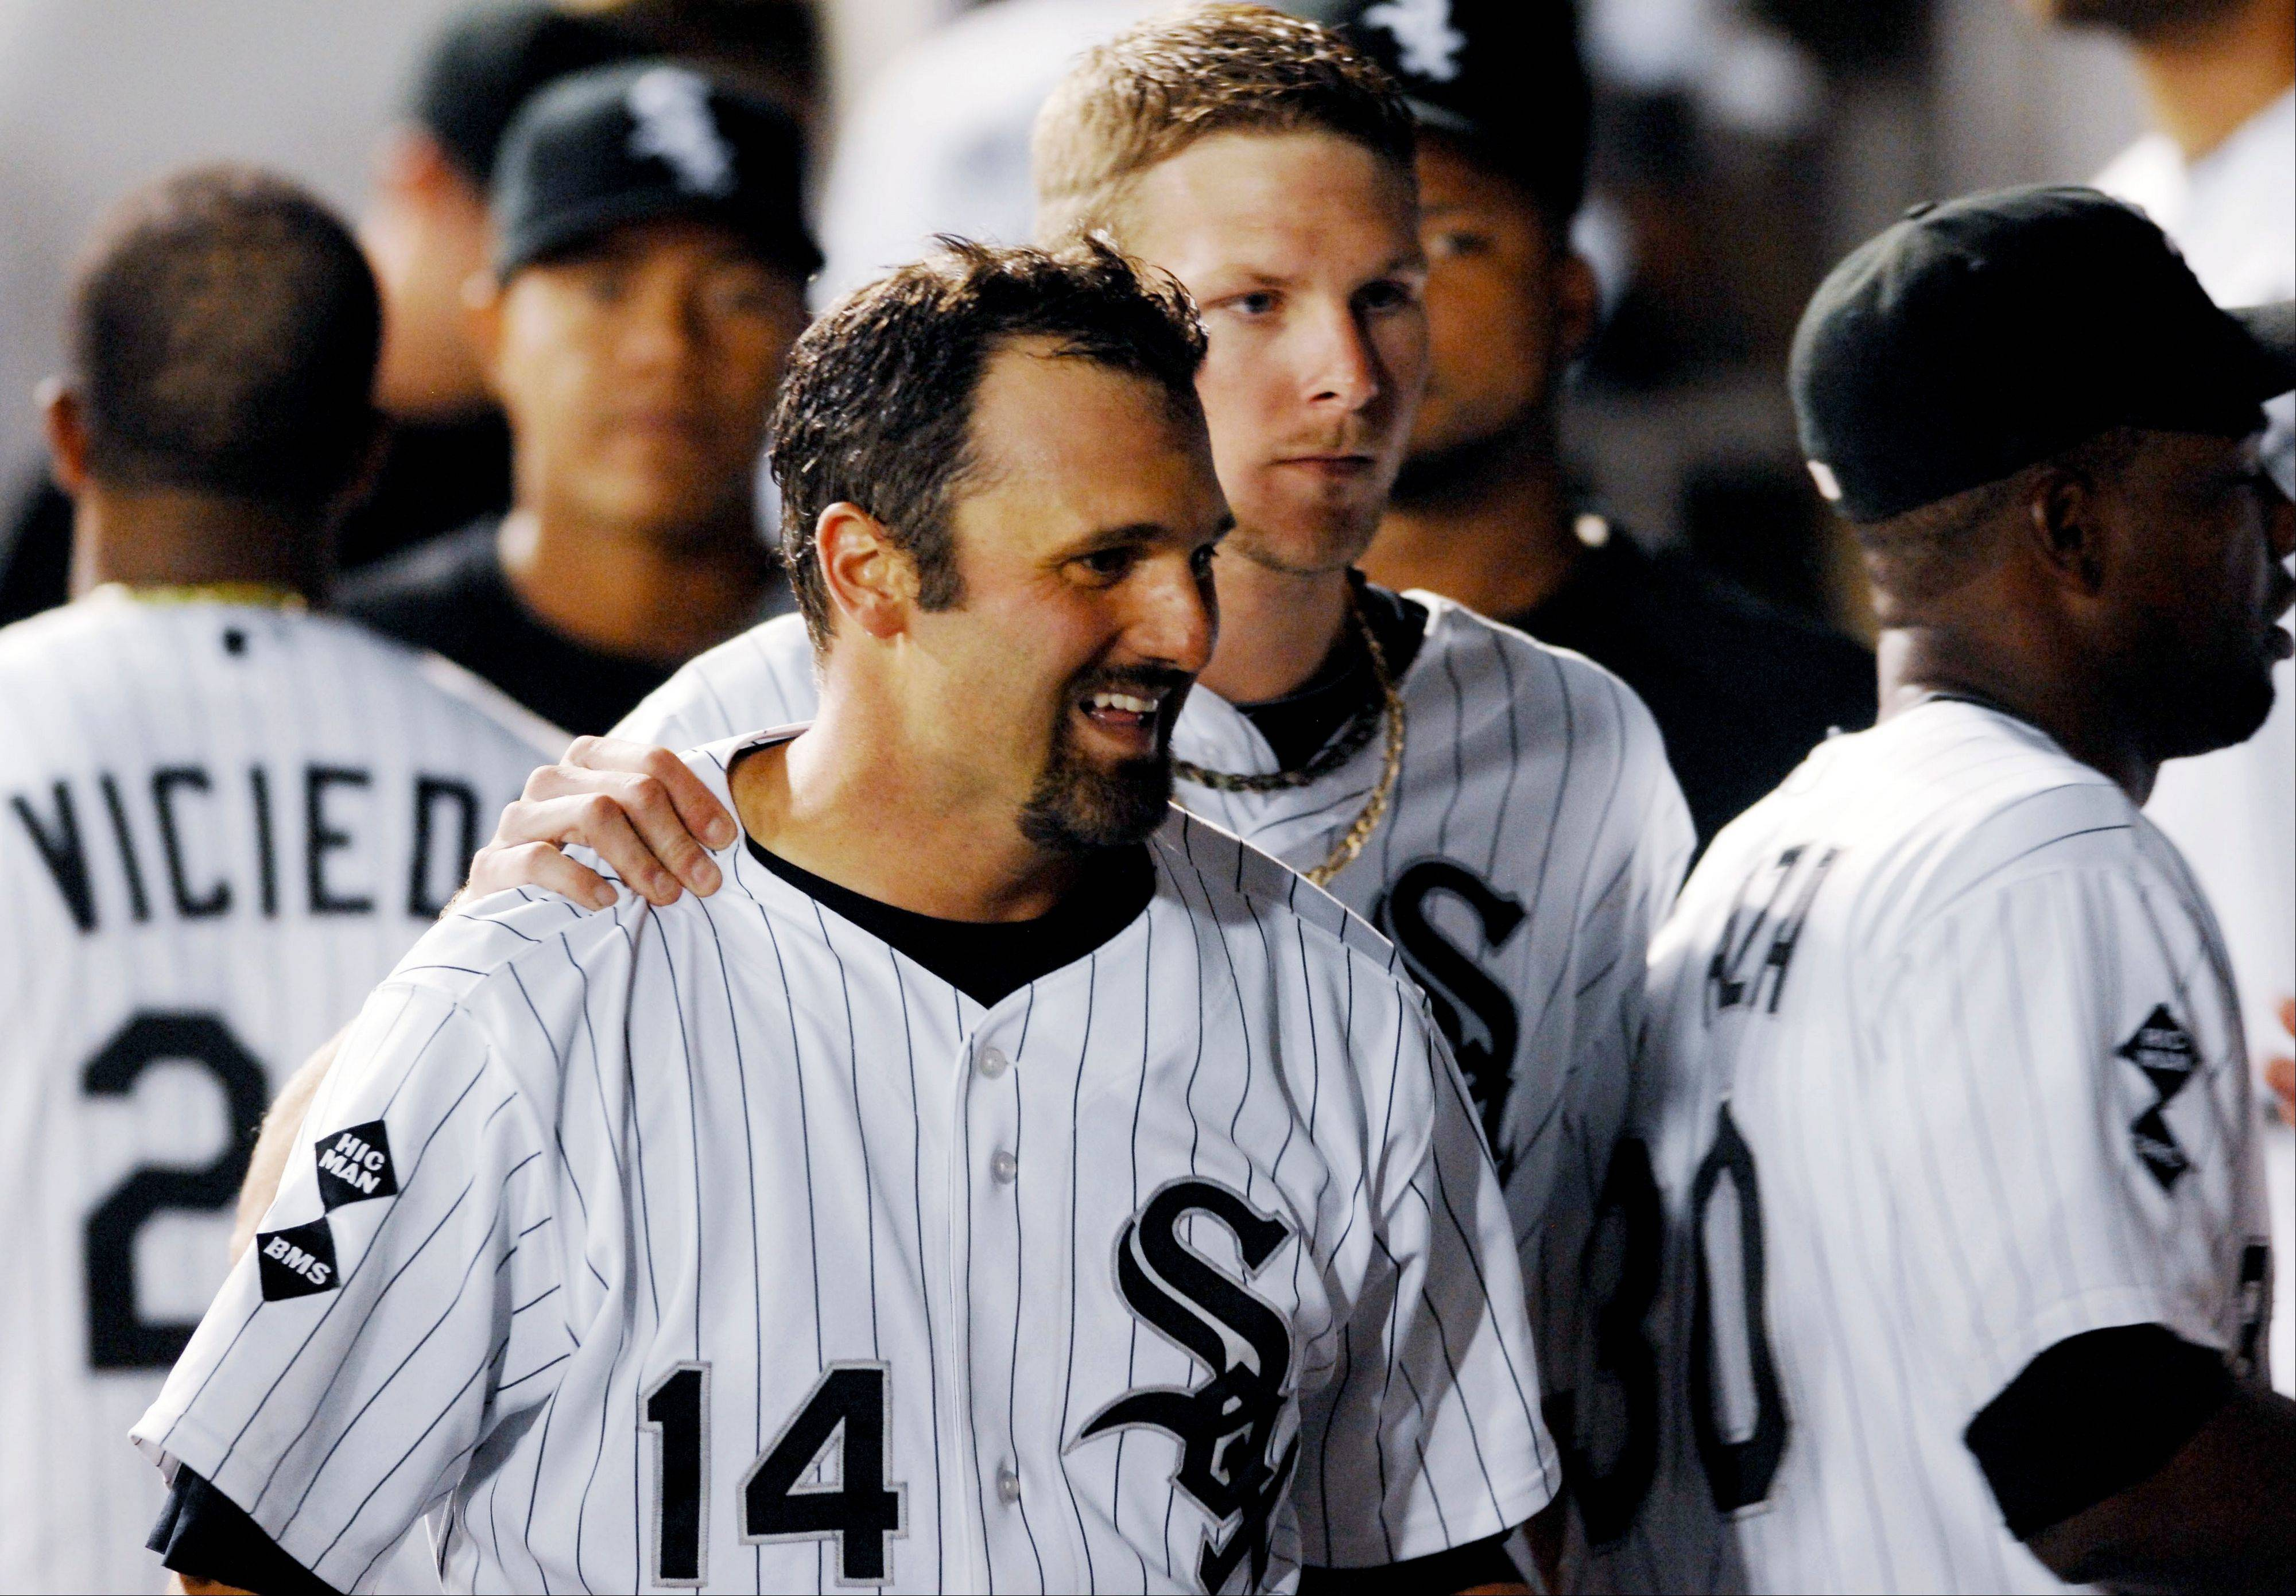 Chicago White Sox starting pitcher Chris Sale puts his hand on Paul Konerko's shoulder in the dugout after Konerko's home run in the seventh inning of a baseball game against the Kansas City Royals, Monday, Aug. 6, 2012, in Chicago. The White Sox won 4-2.